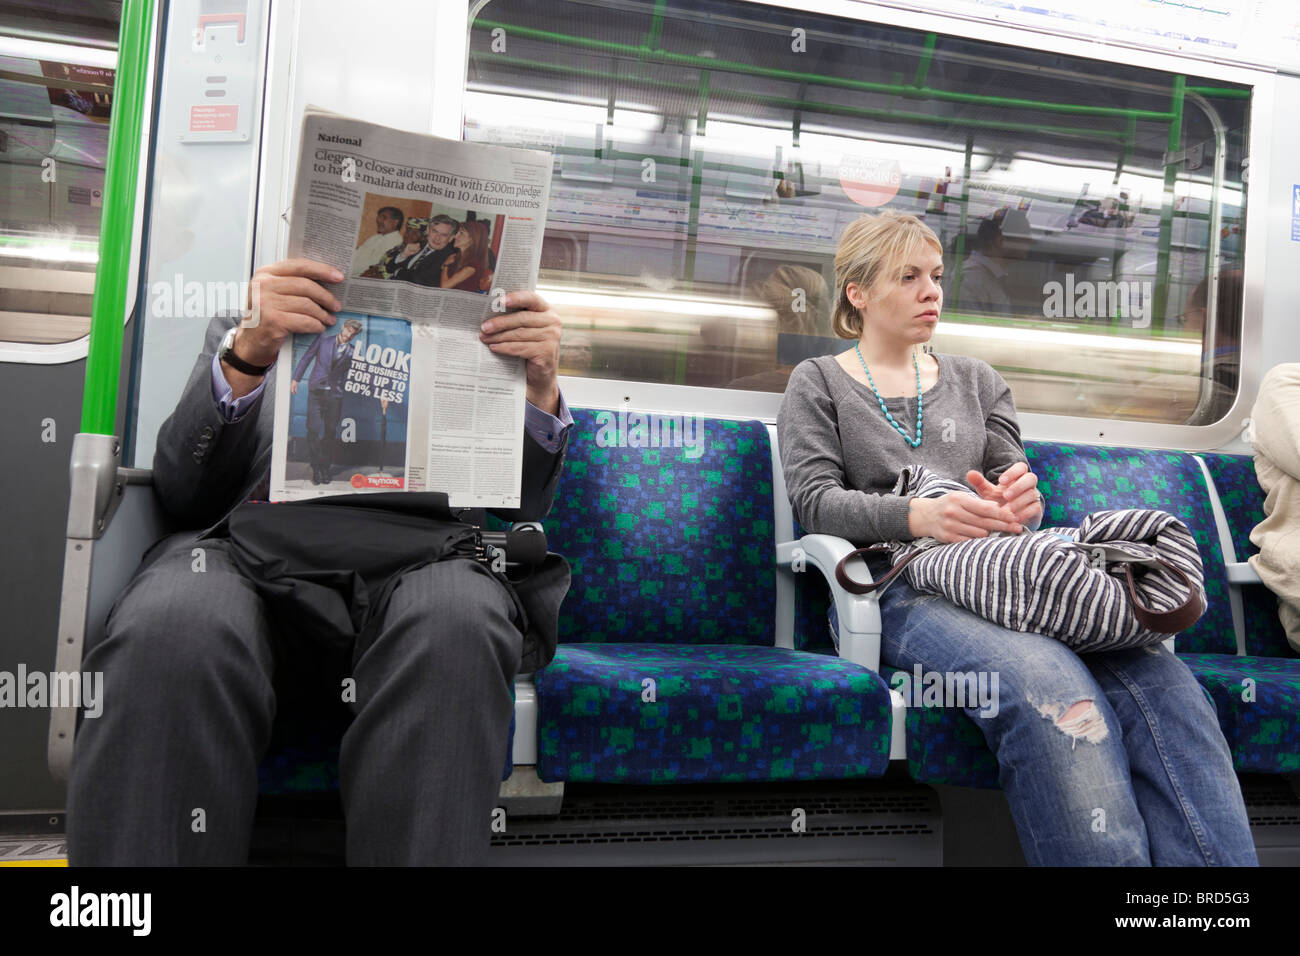 male passenger reading newspaper with bored looking woman seated on London Underground - Stock Image